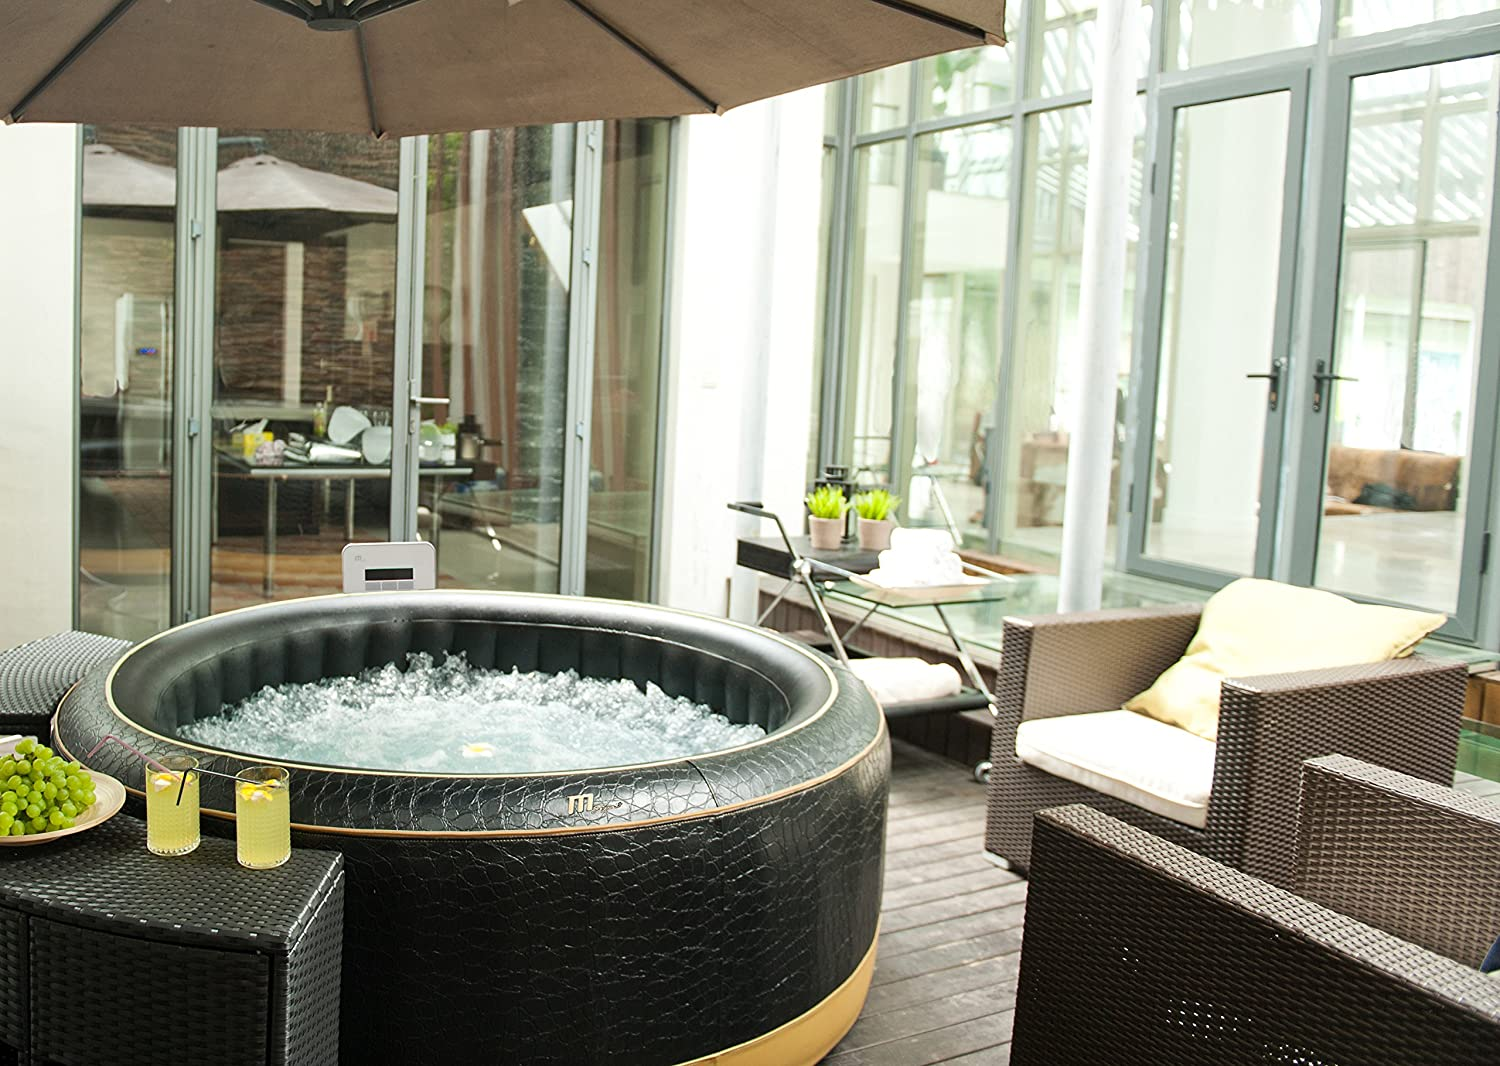 MSPA Luxury Exotic Relaxation and Hydrotherapy Spa